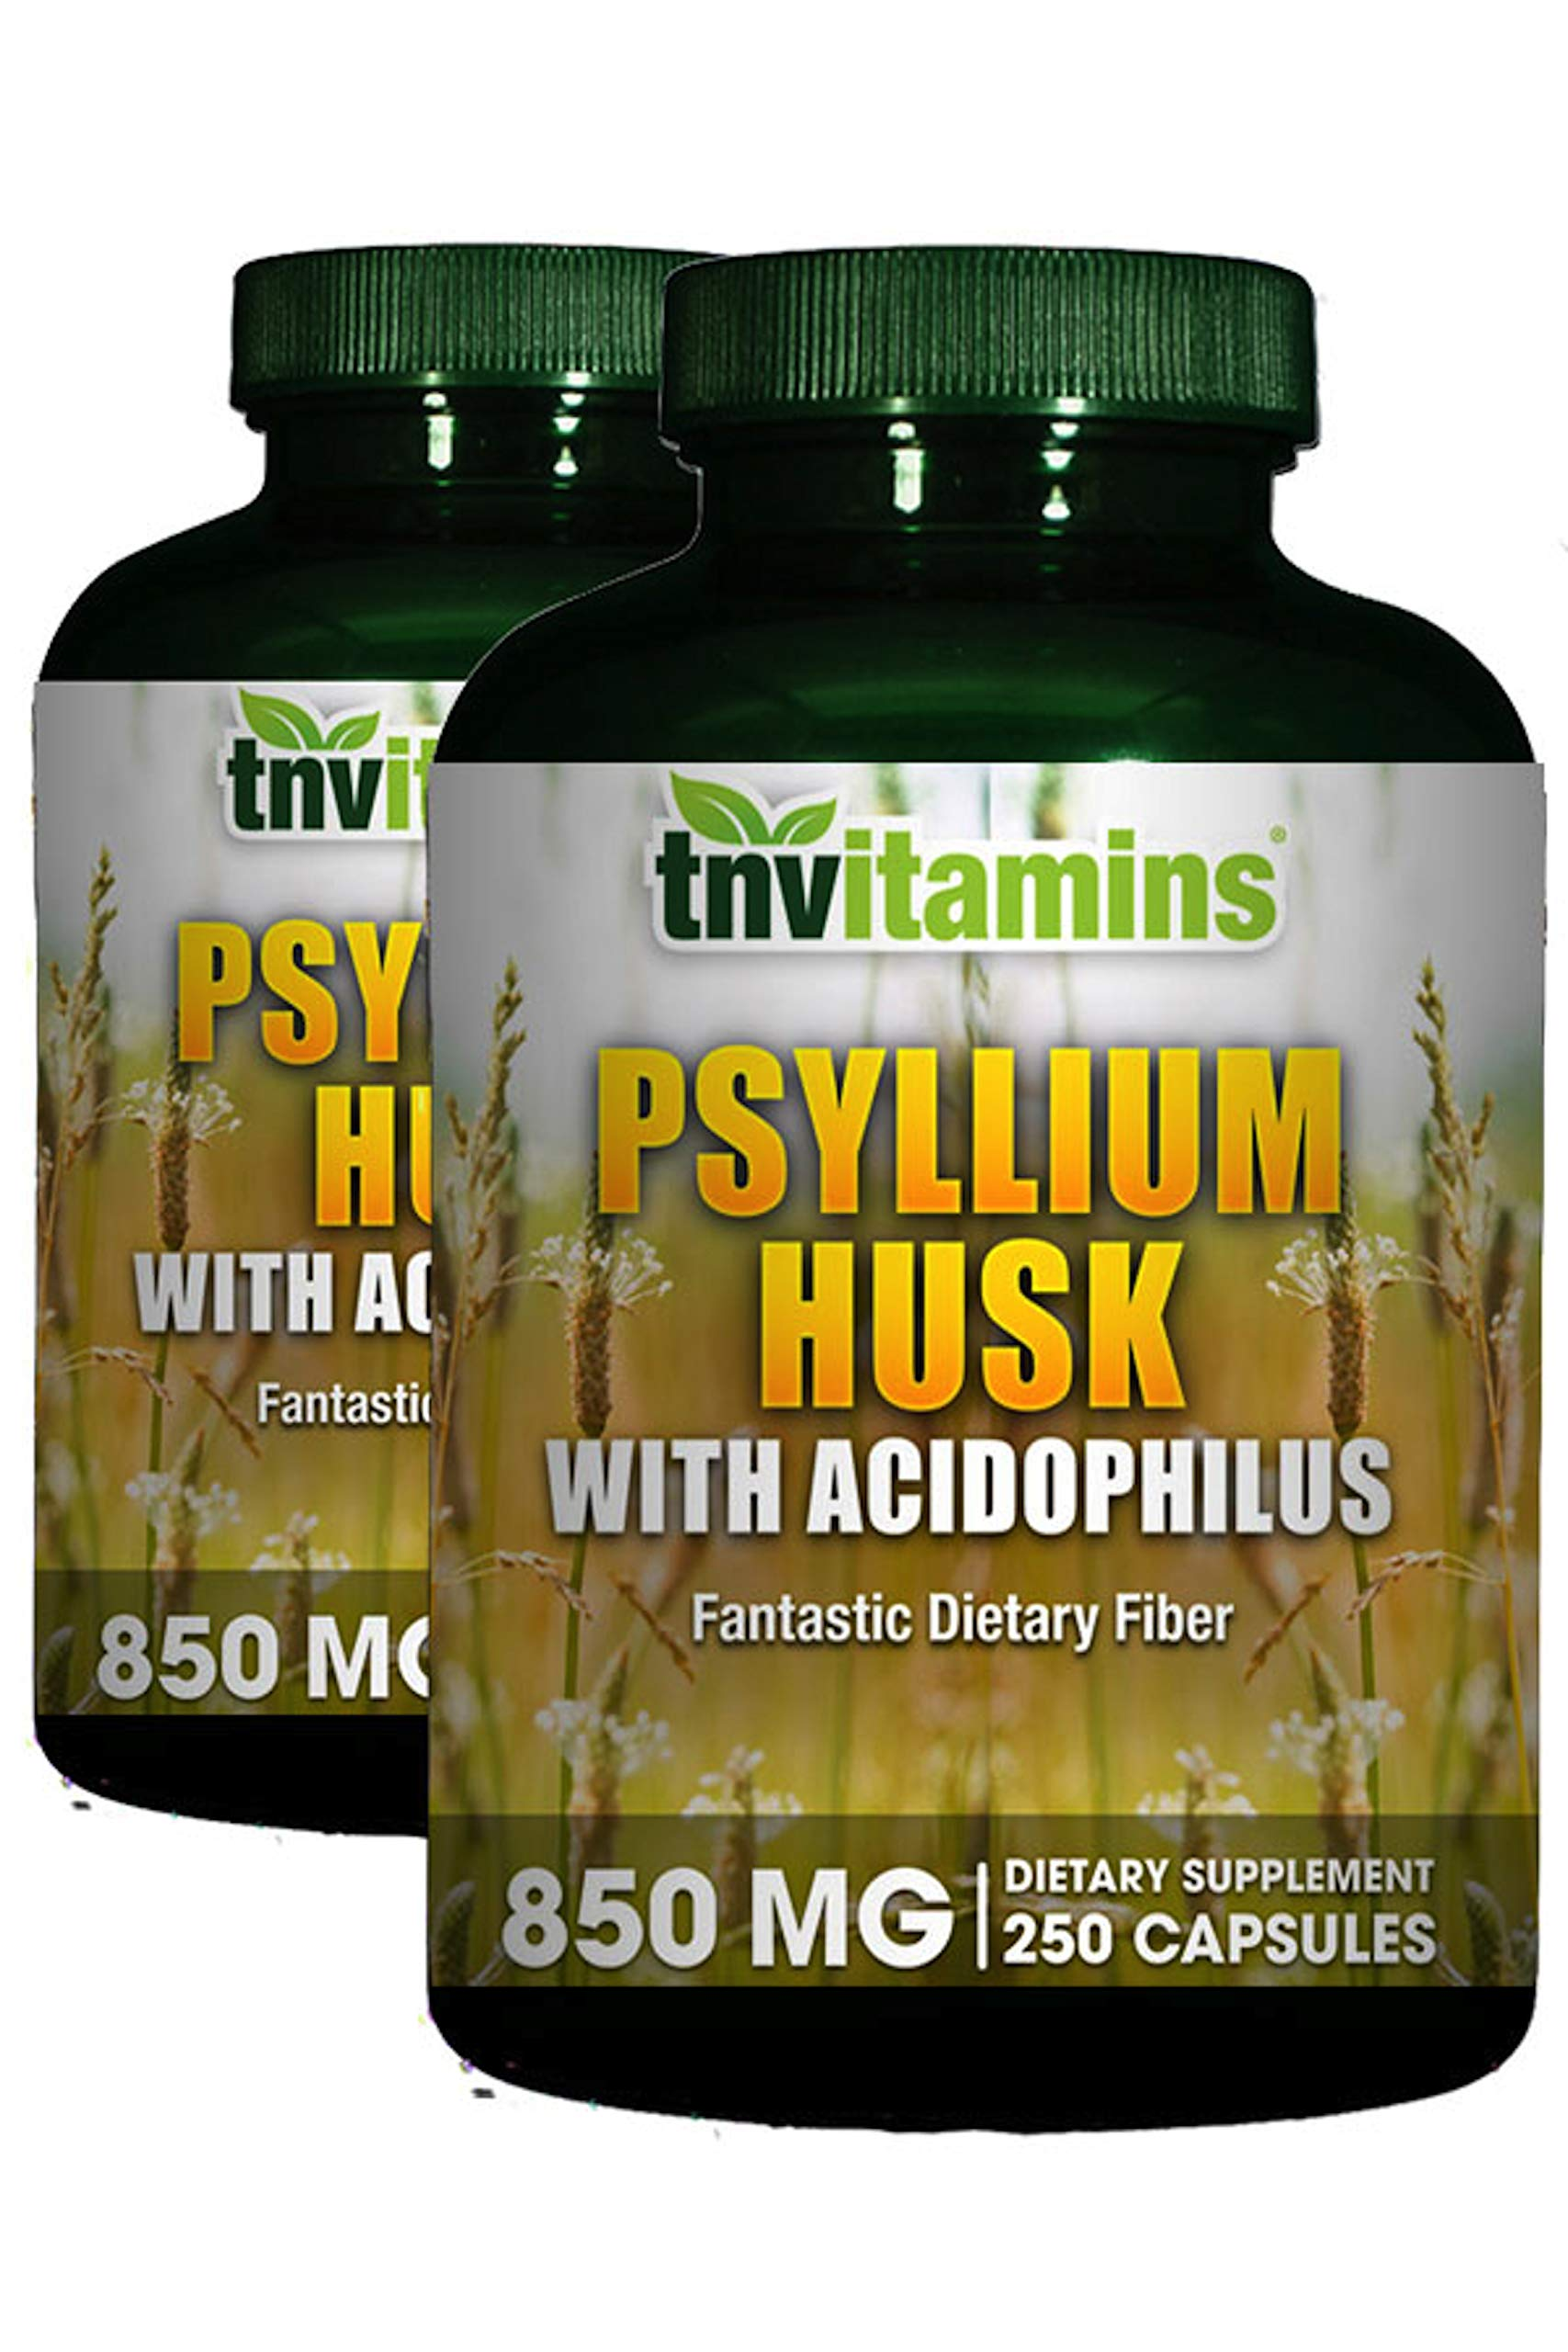 Psyllium Husk Fiber 850 Mg with Acidophilus by TNVitamins (2 x 250 Capsules) by TNVitamins